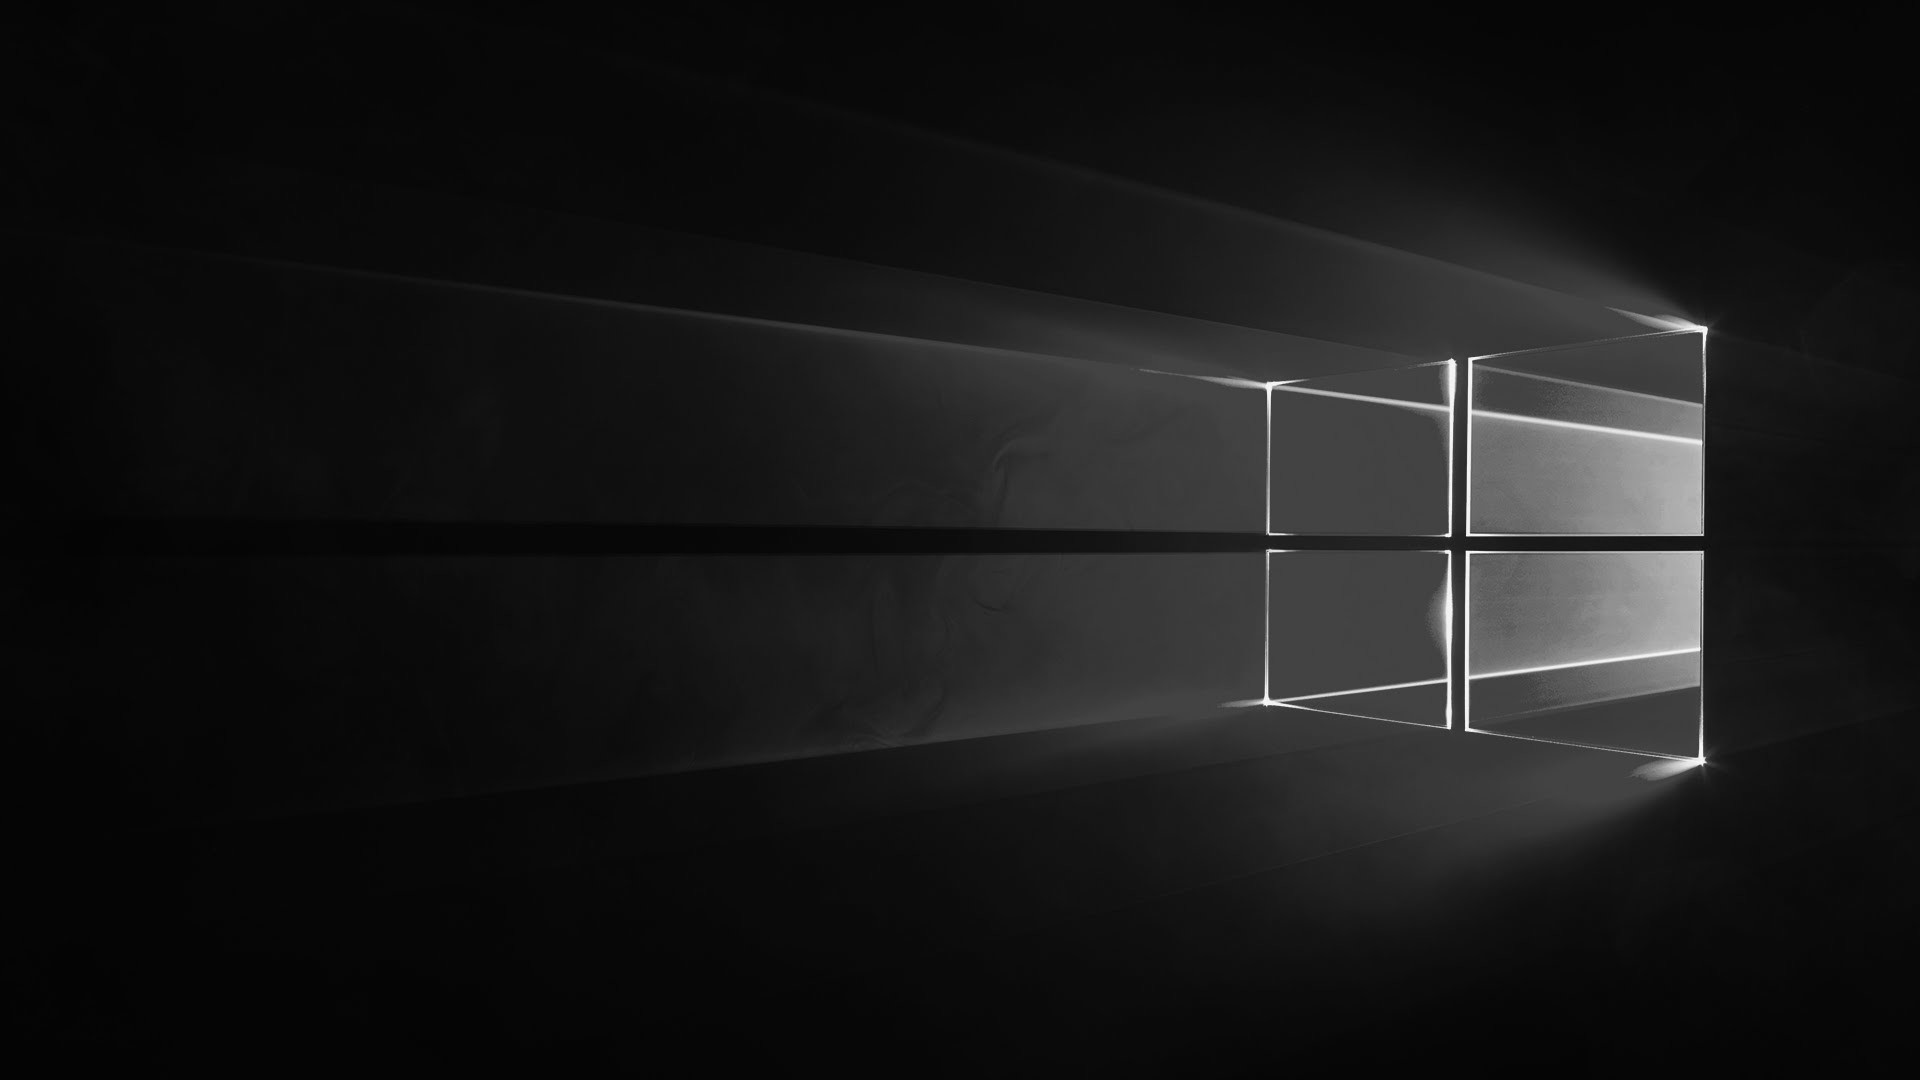 windows 10 black wallpaper (67+ images)